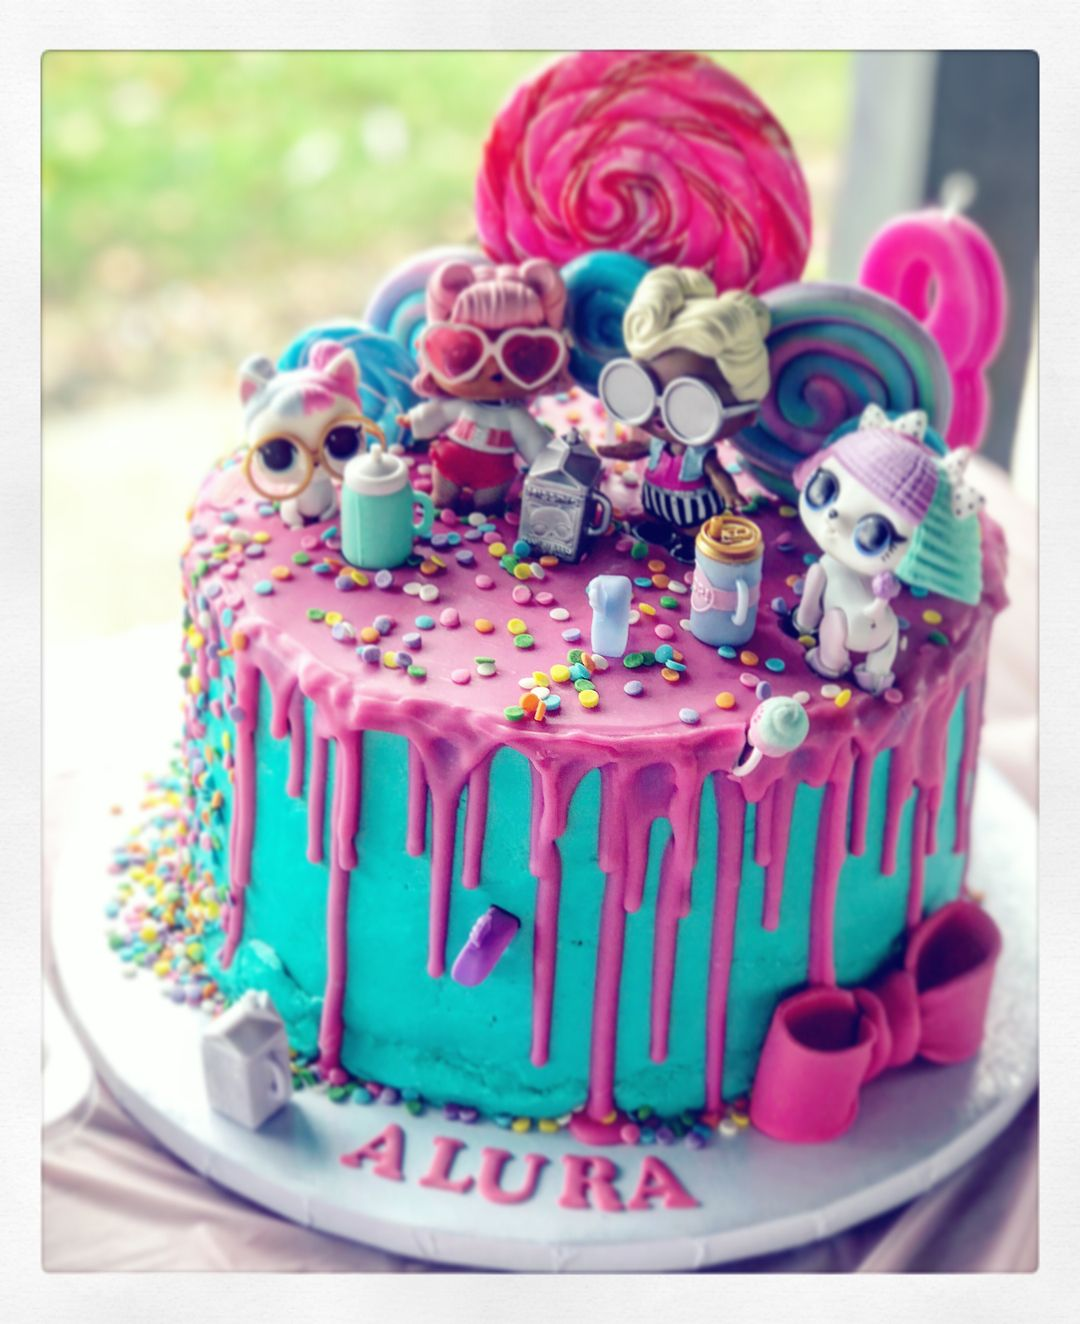 Superb Marinas Cake With Images Funny Birthday Cakes 7Th Birthday Funny Birthday Cards Online Elaedamsfinfo